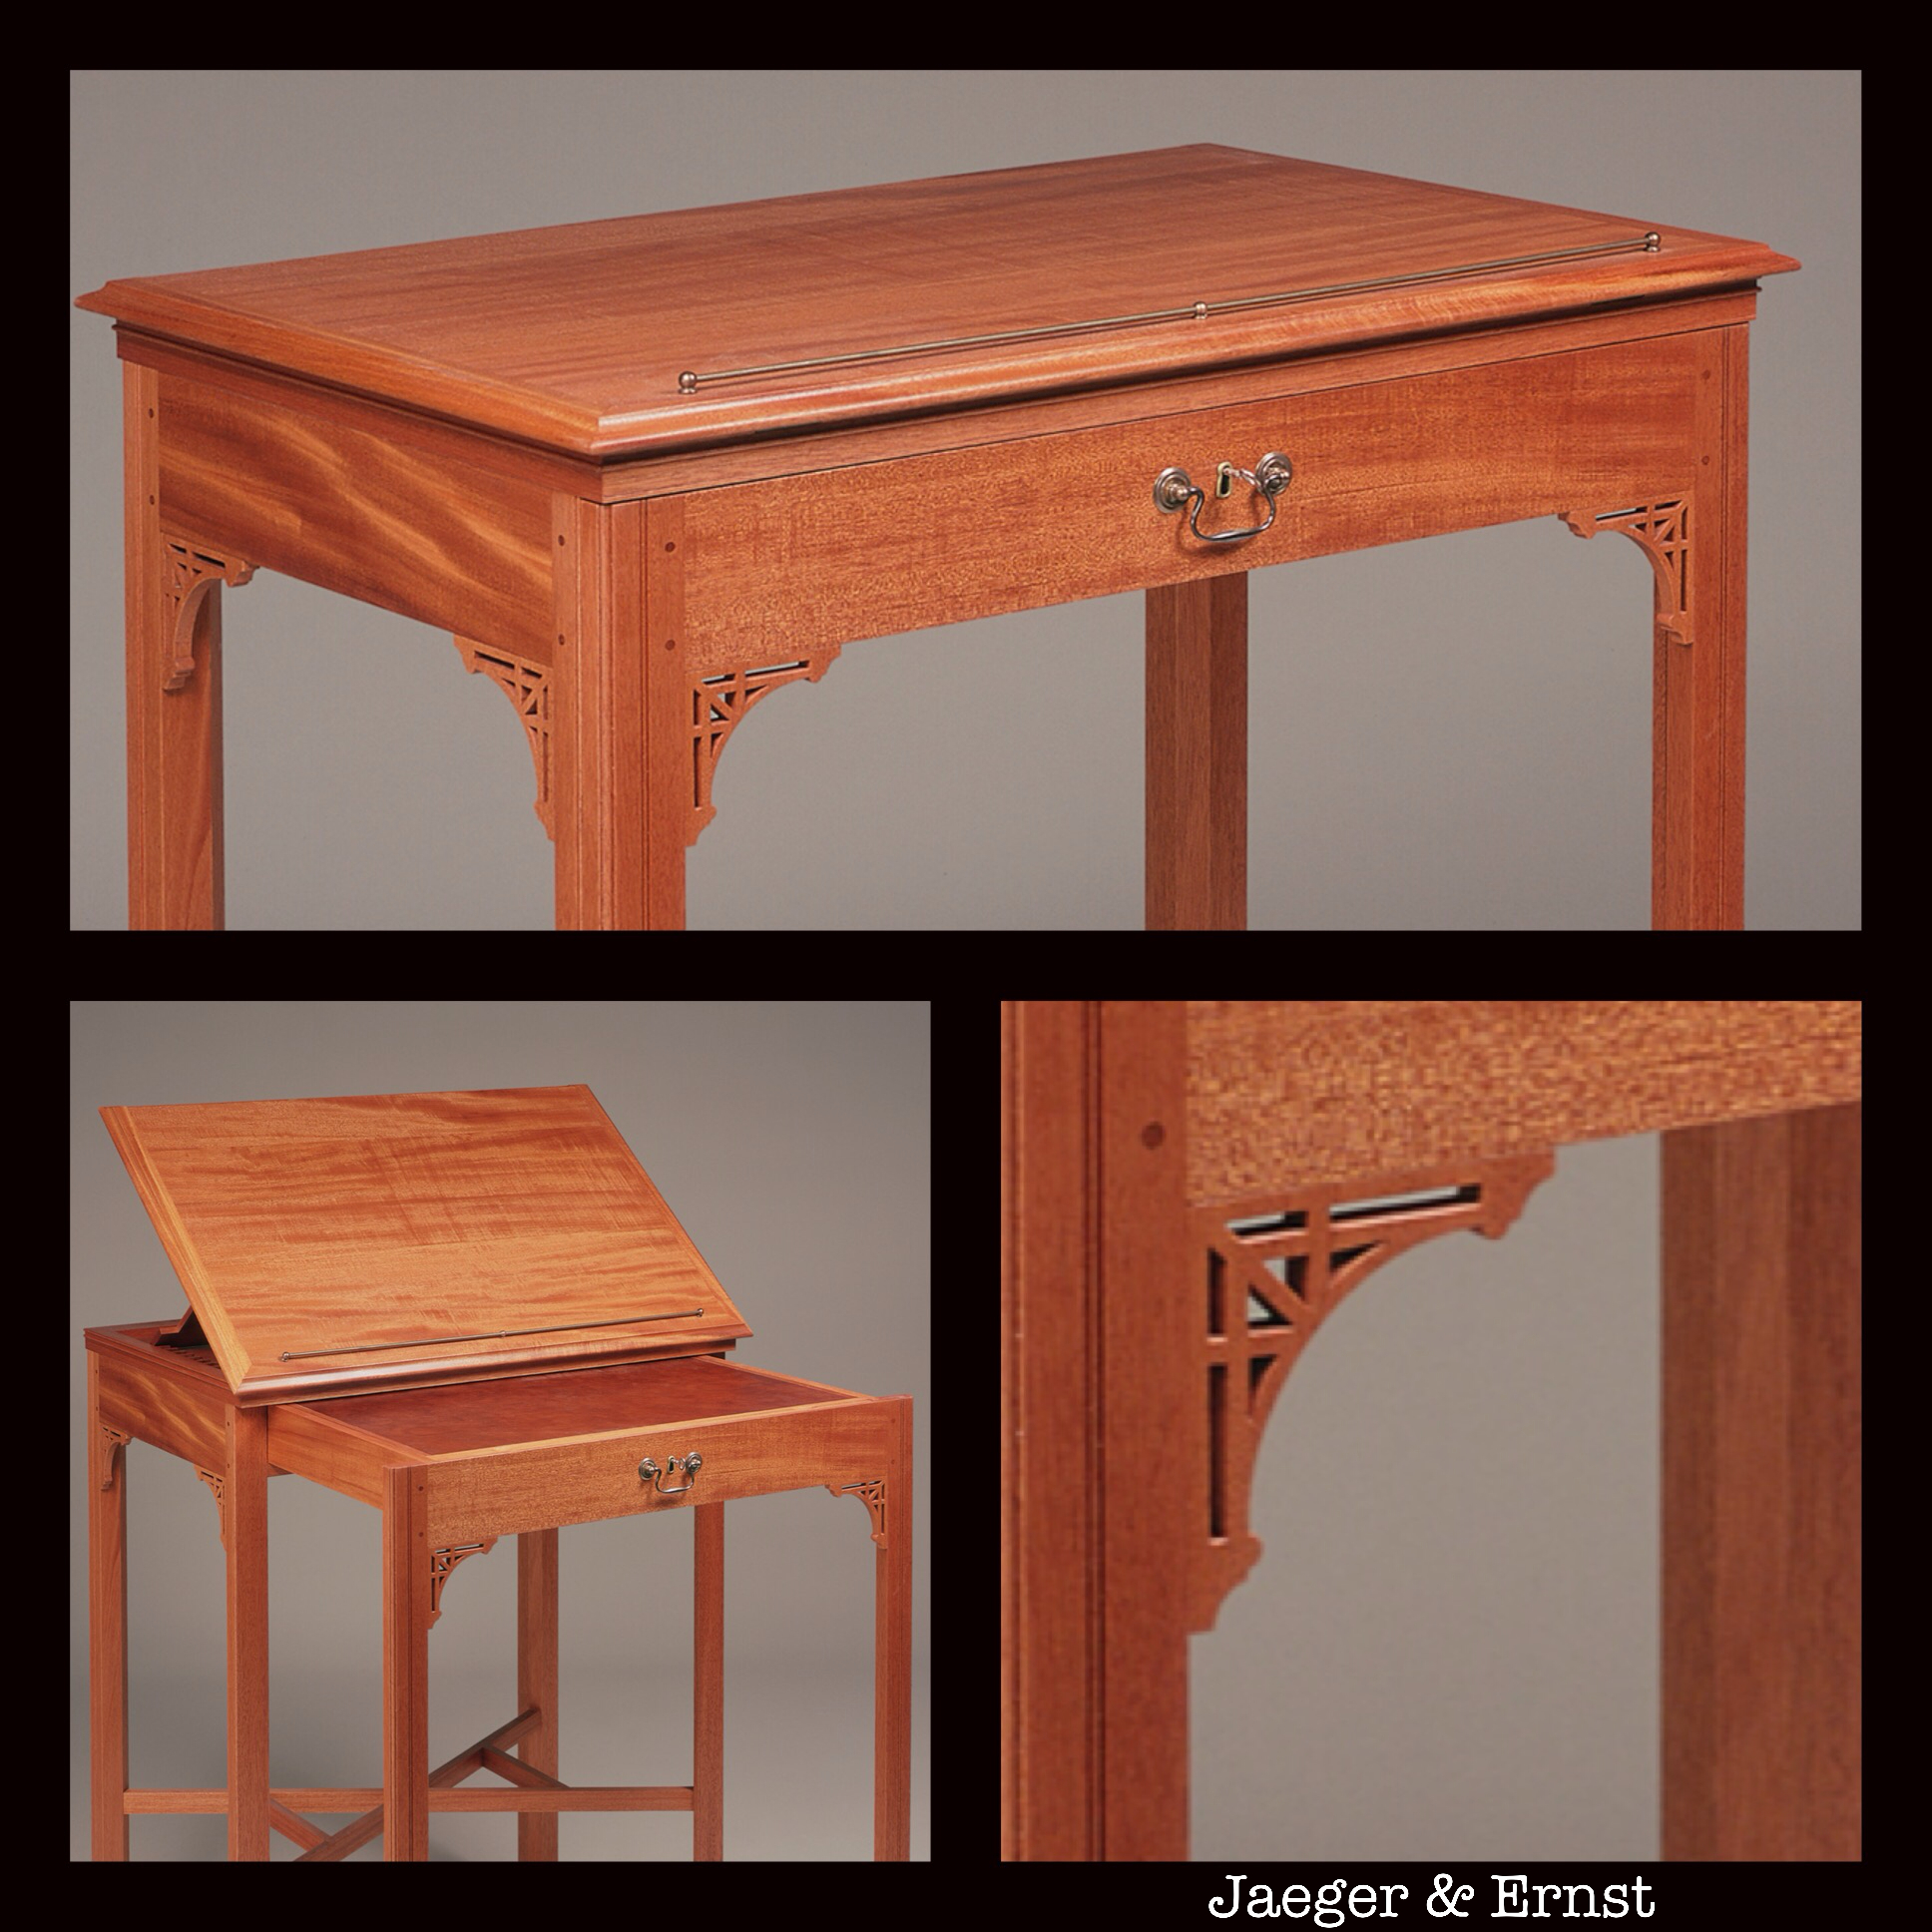 cabinetry designers, architects, Jeffersonian Chair, Oak, Stickely, design, craftsmenship